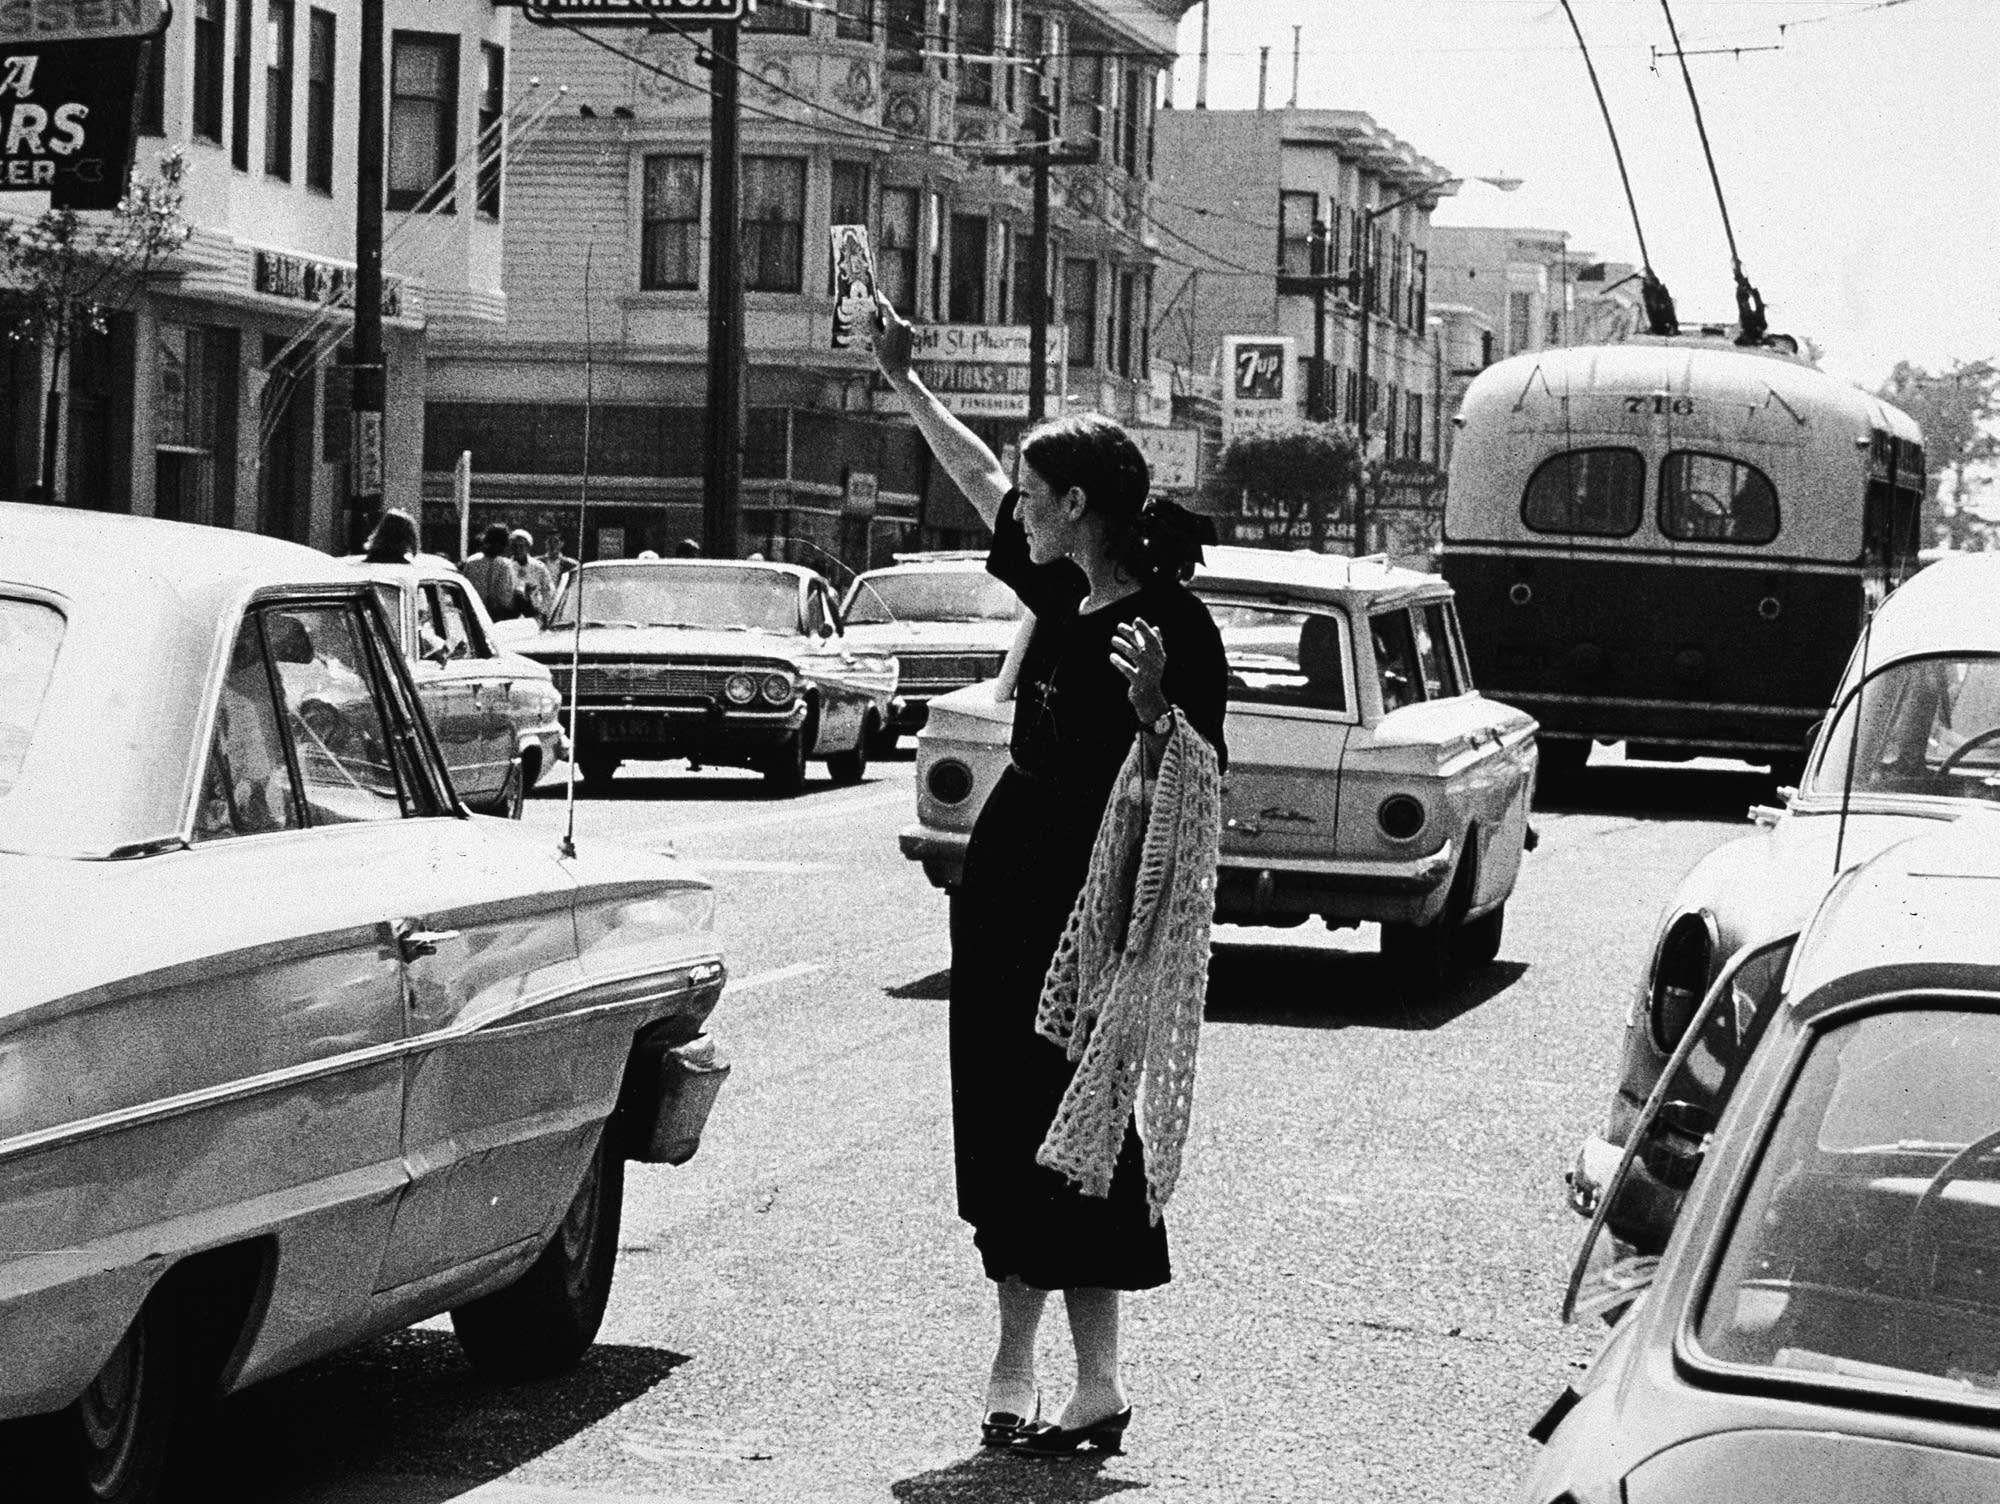 A hippie in San Francisco, 1967